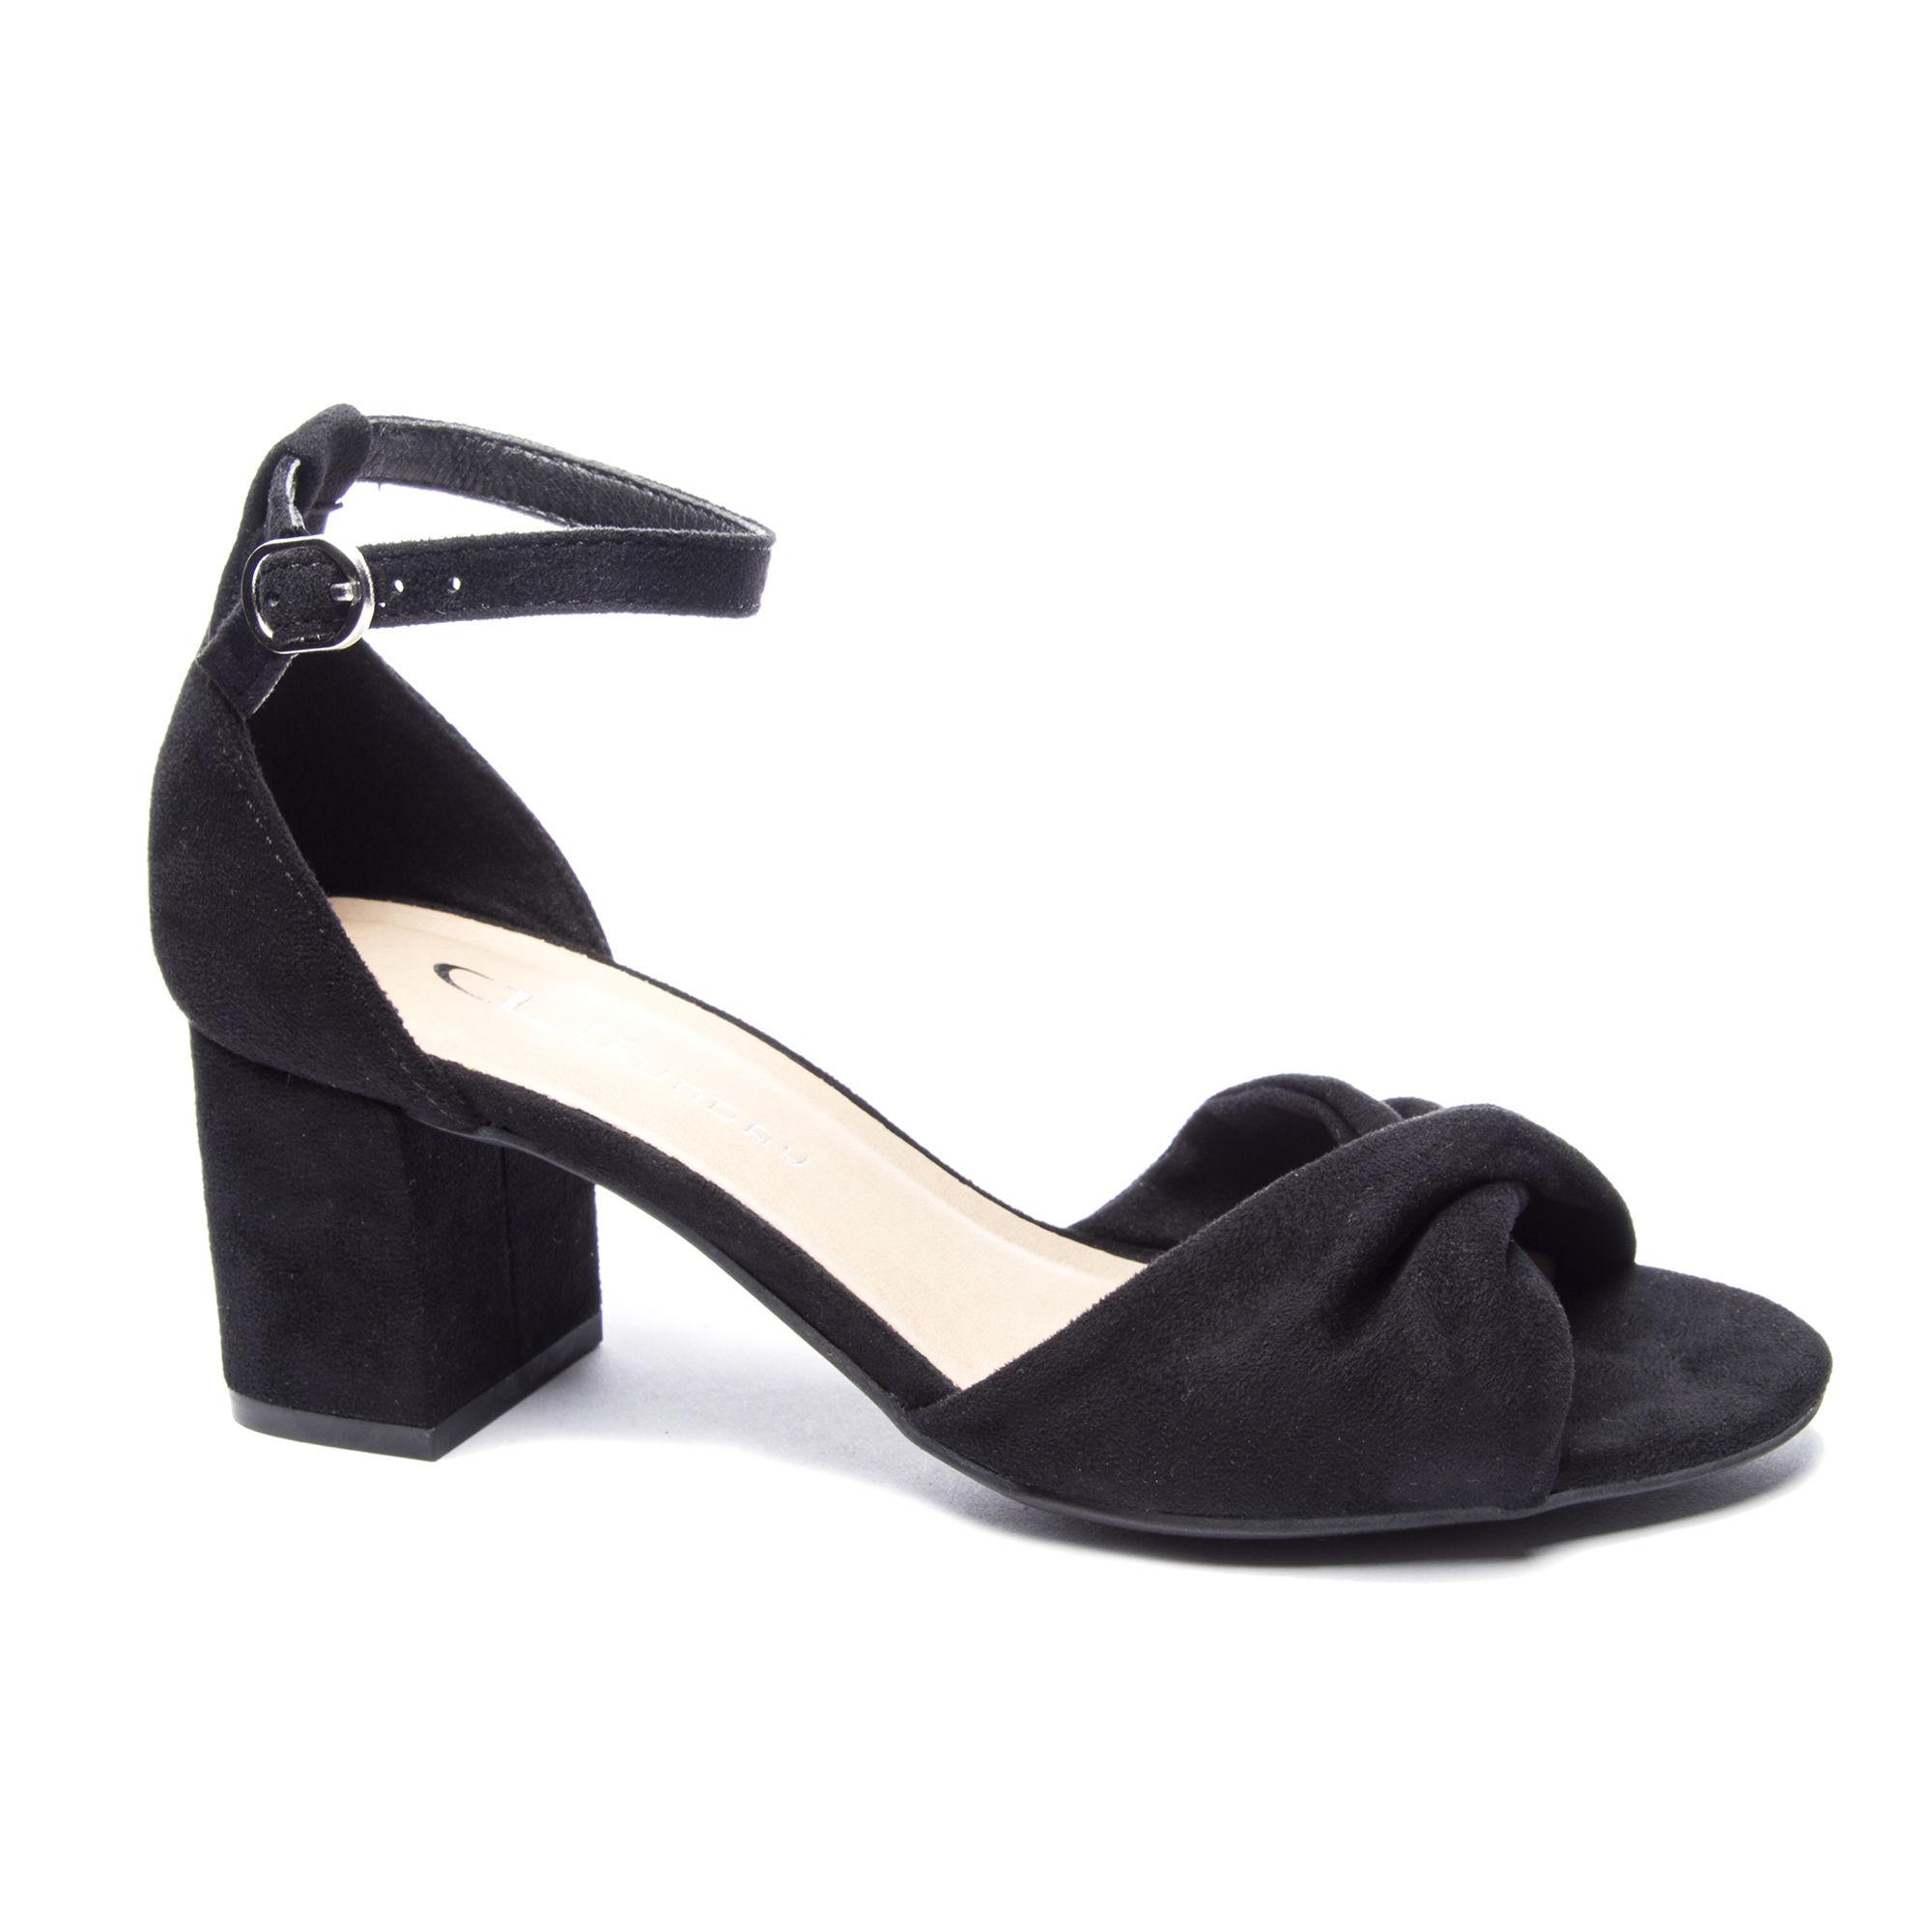 fd860a73bc5 Lyst - Chinese Laundry Joselyn Block Heel Sandal in Black